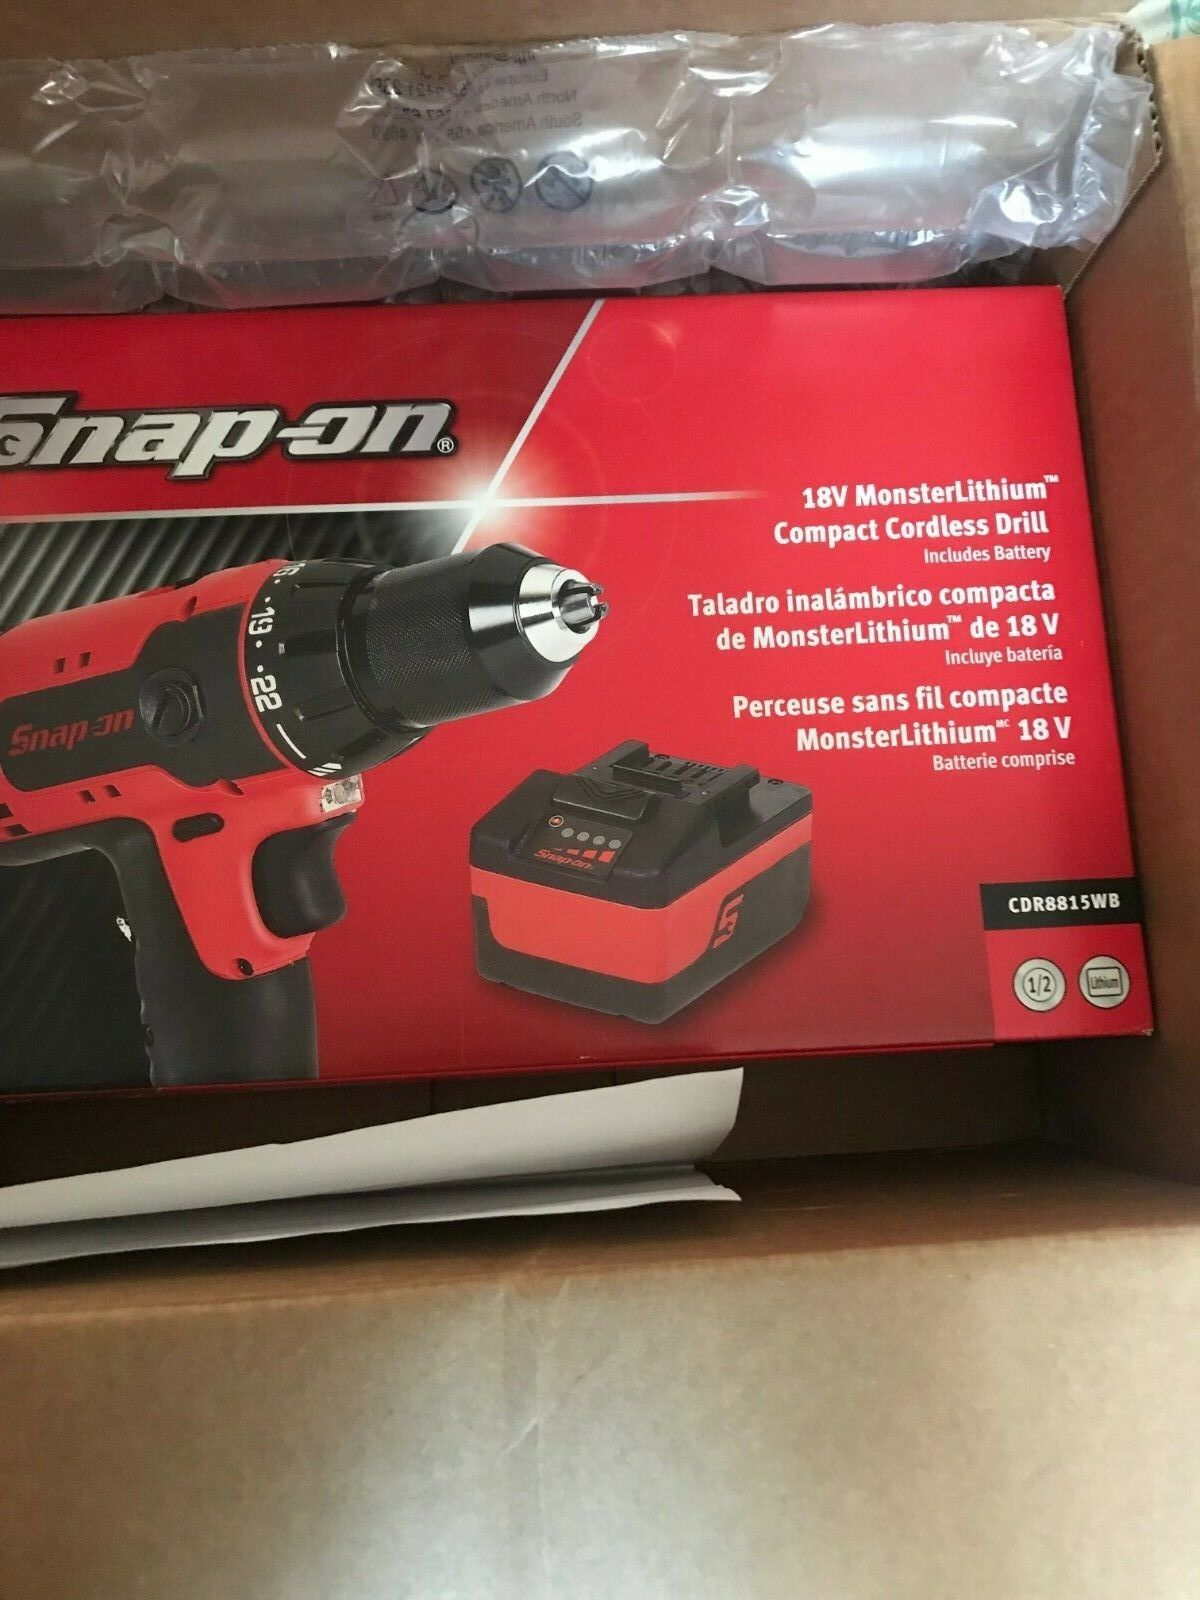 snap on 18 V MonsterLithium Compact Cordless Drill CDR8815WB Does not apply